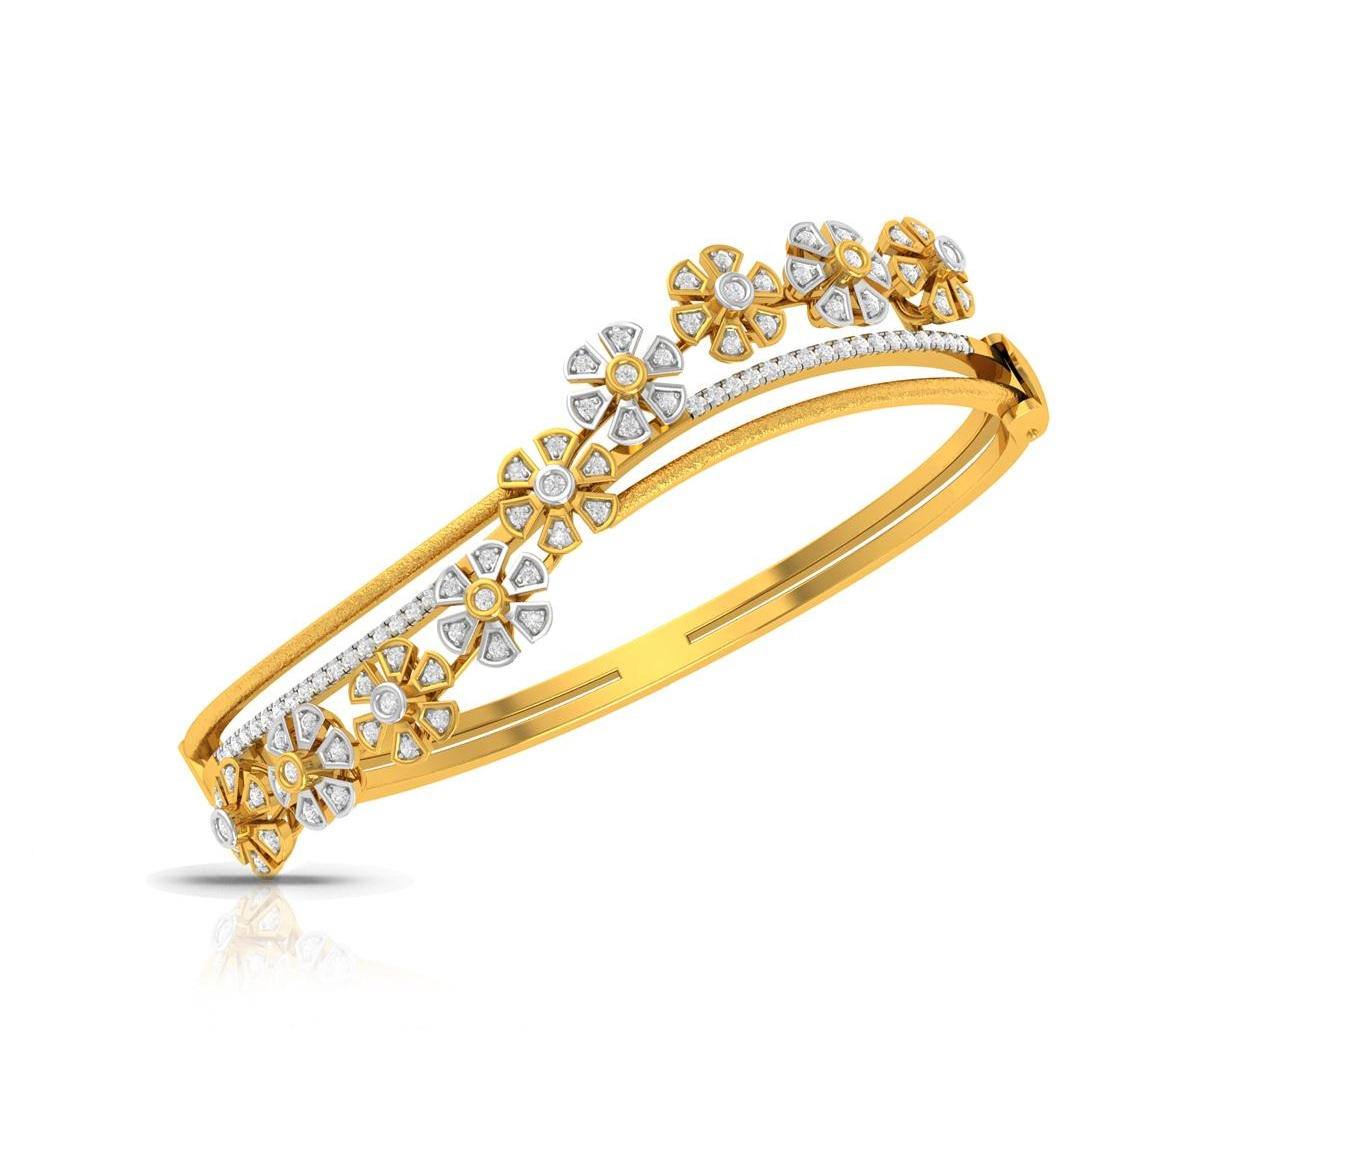 5e690fe31c200 Antique Diamond Bangle Bracelet With 14k Yellow Gold For Sale Online Cuban  Link Bracelet With 6 Carat Diamonds In 14K Yellow Gold.14K Yellow Gold ...